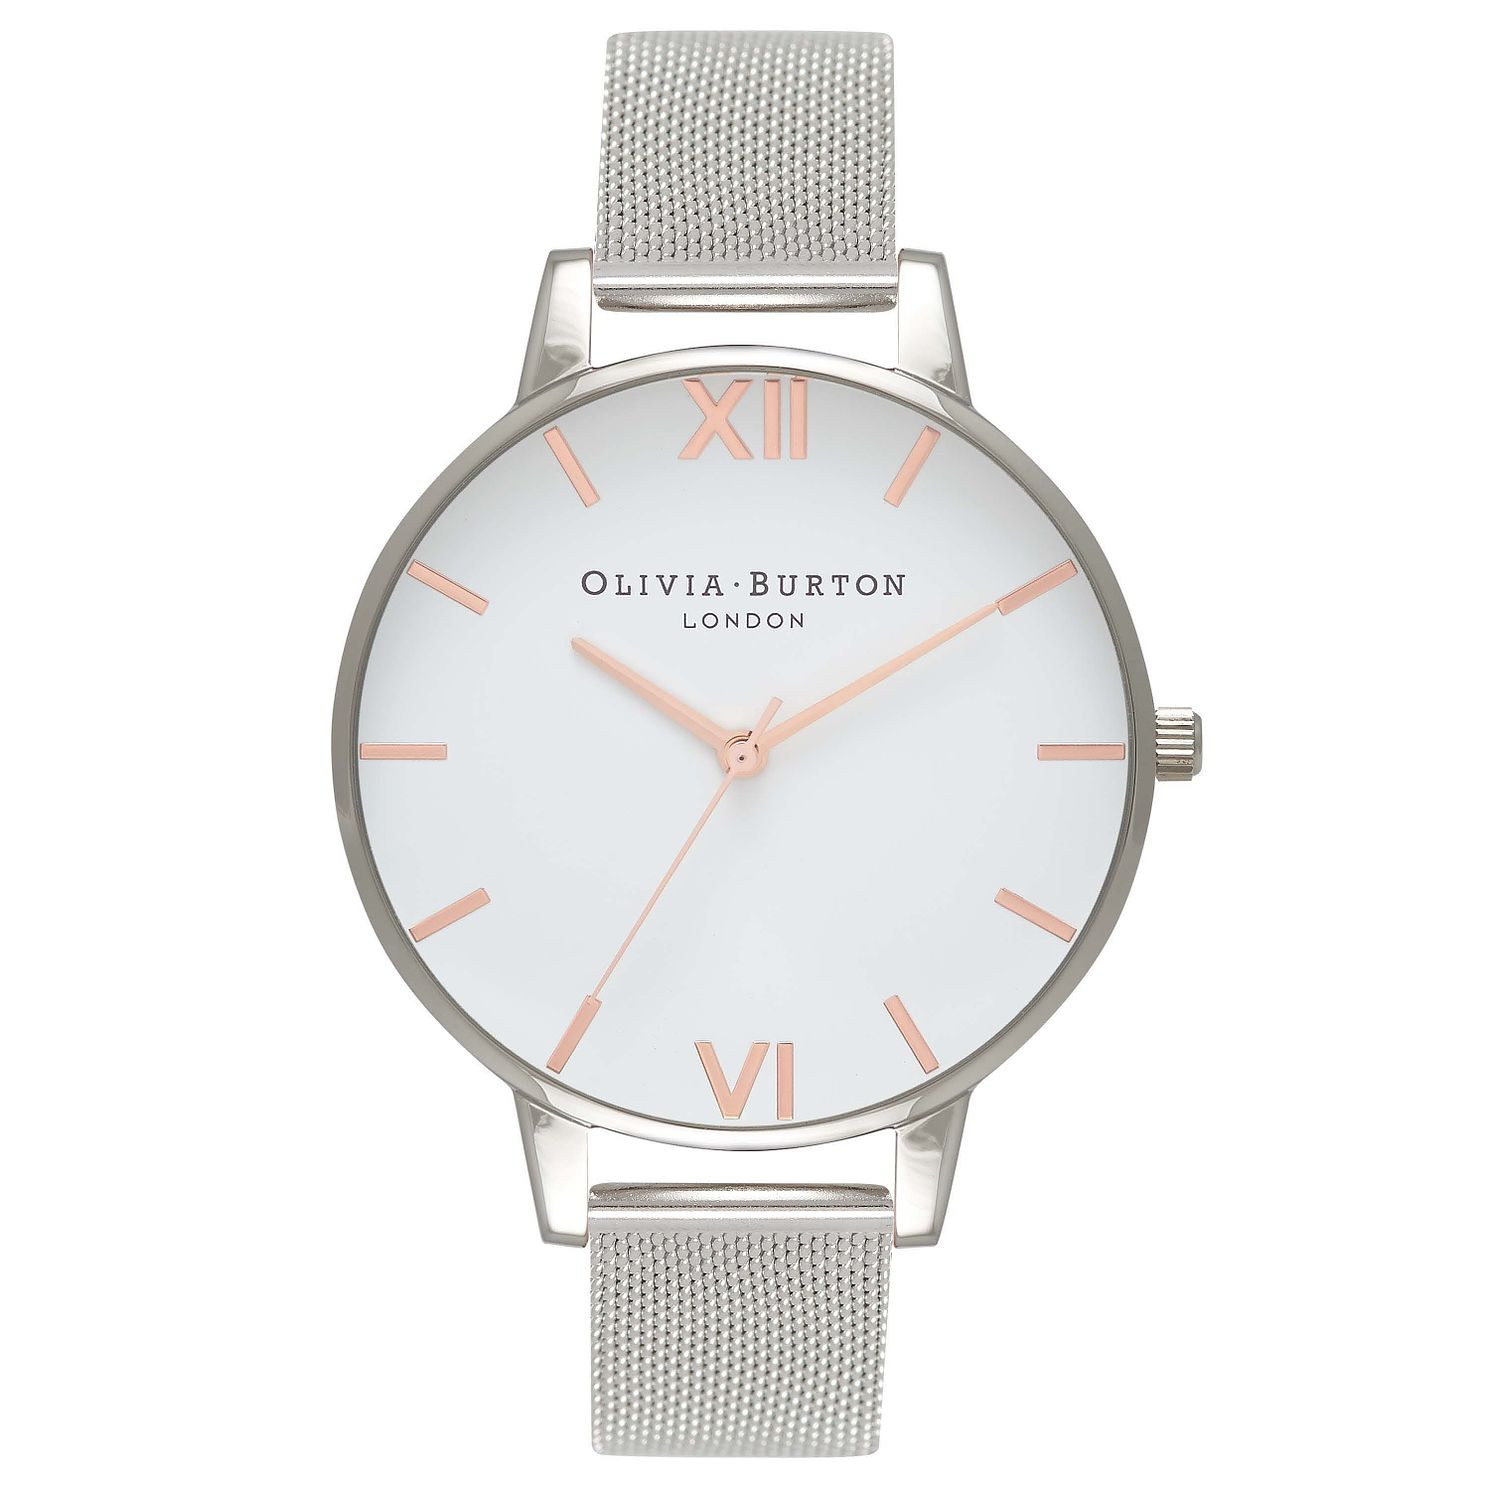 Olivia Burton Big Dial Silver Metal Plated Mesh Watch - Product number 8817057